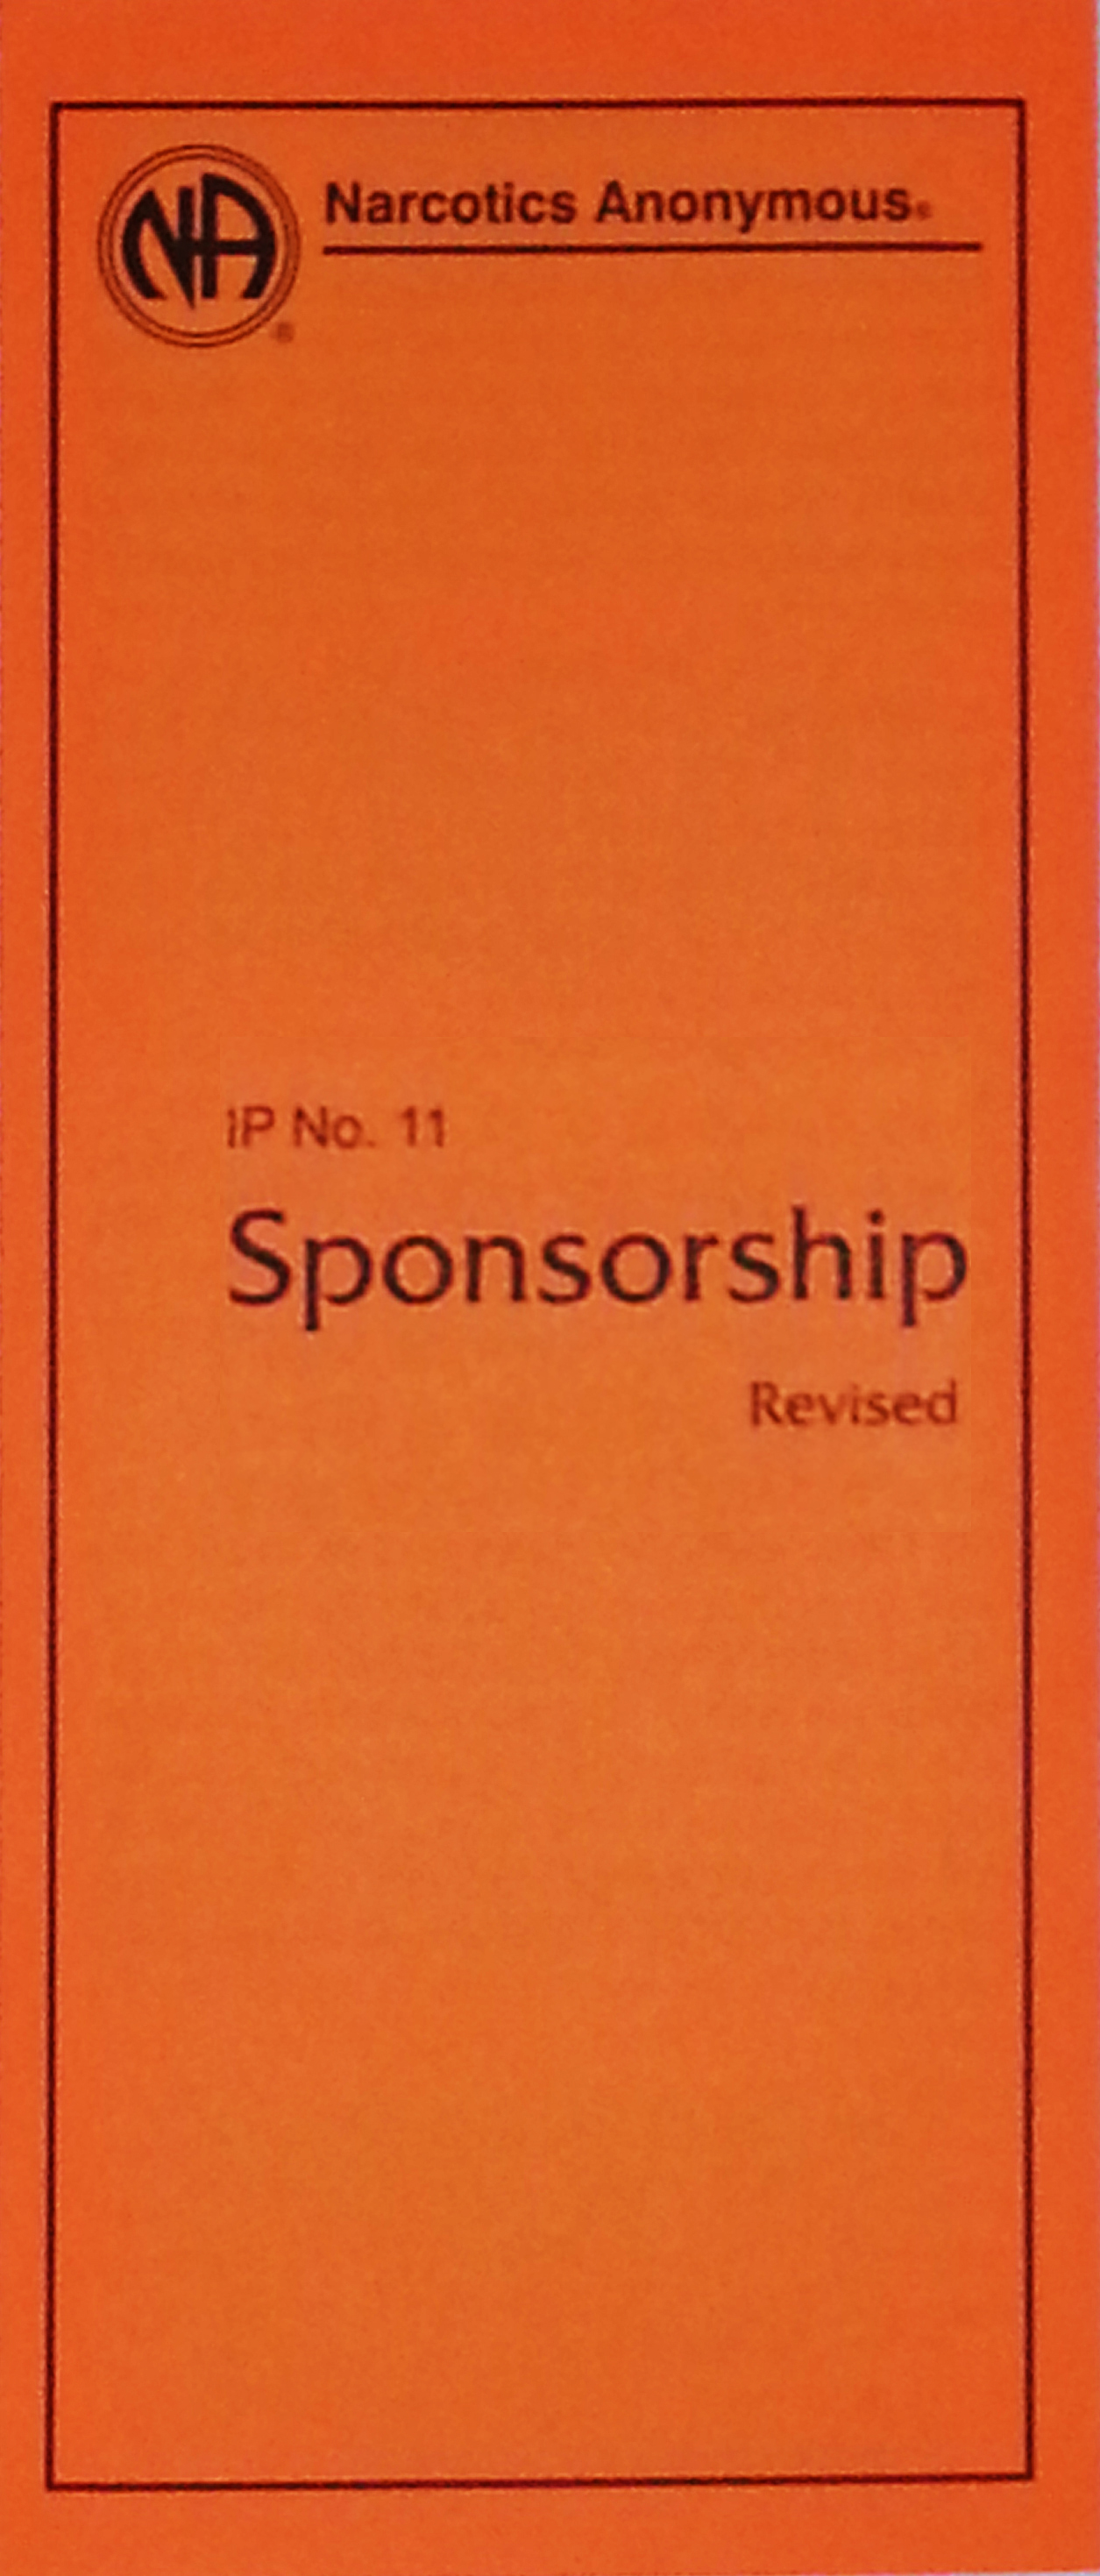 Narcotics Anonymous Information Pamphlet, IP#11,         Sponsorship